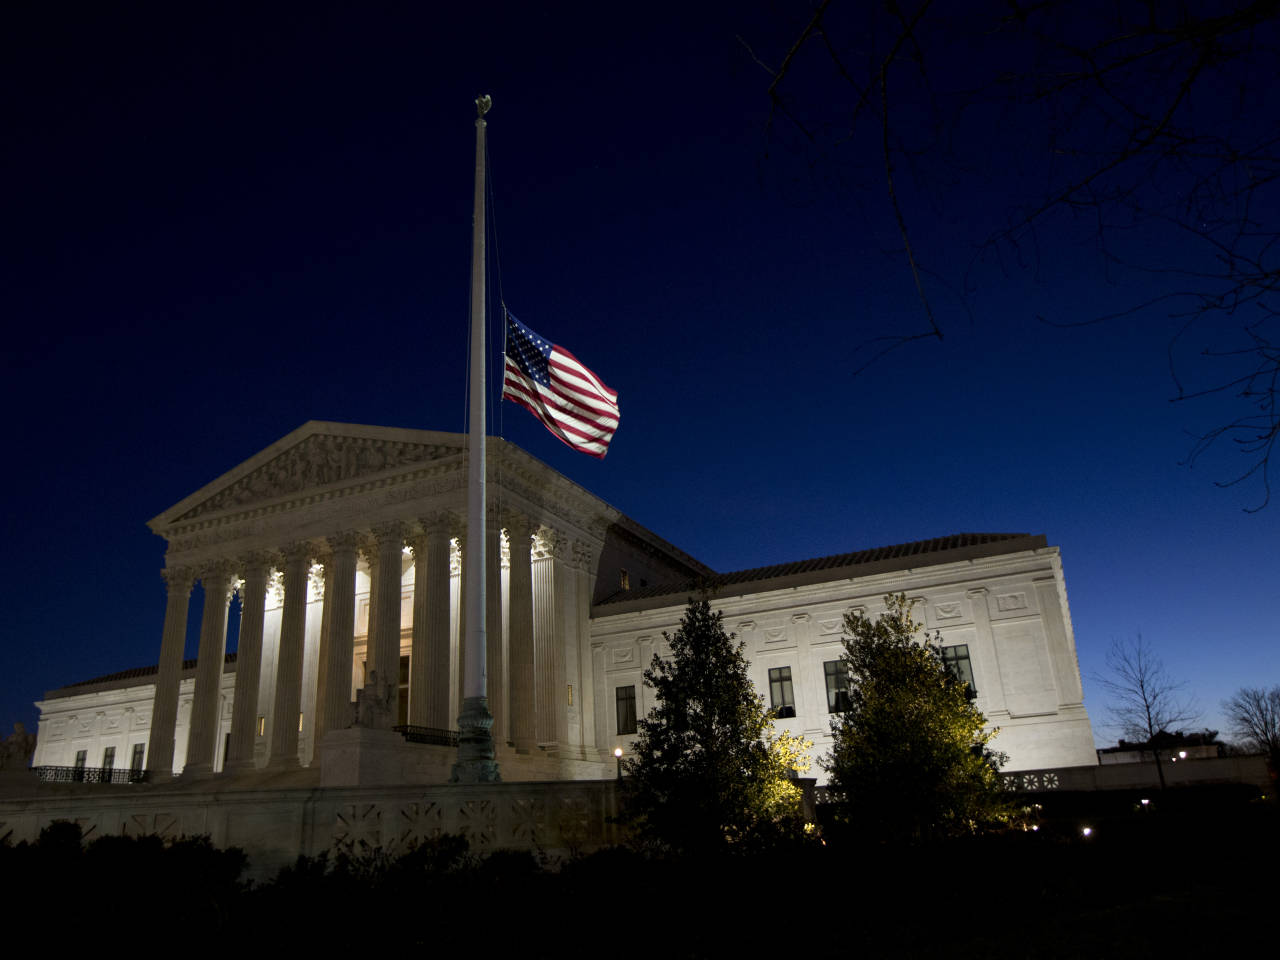 A dissenting opinion: Supreme Court is not a top priority ...